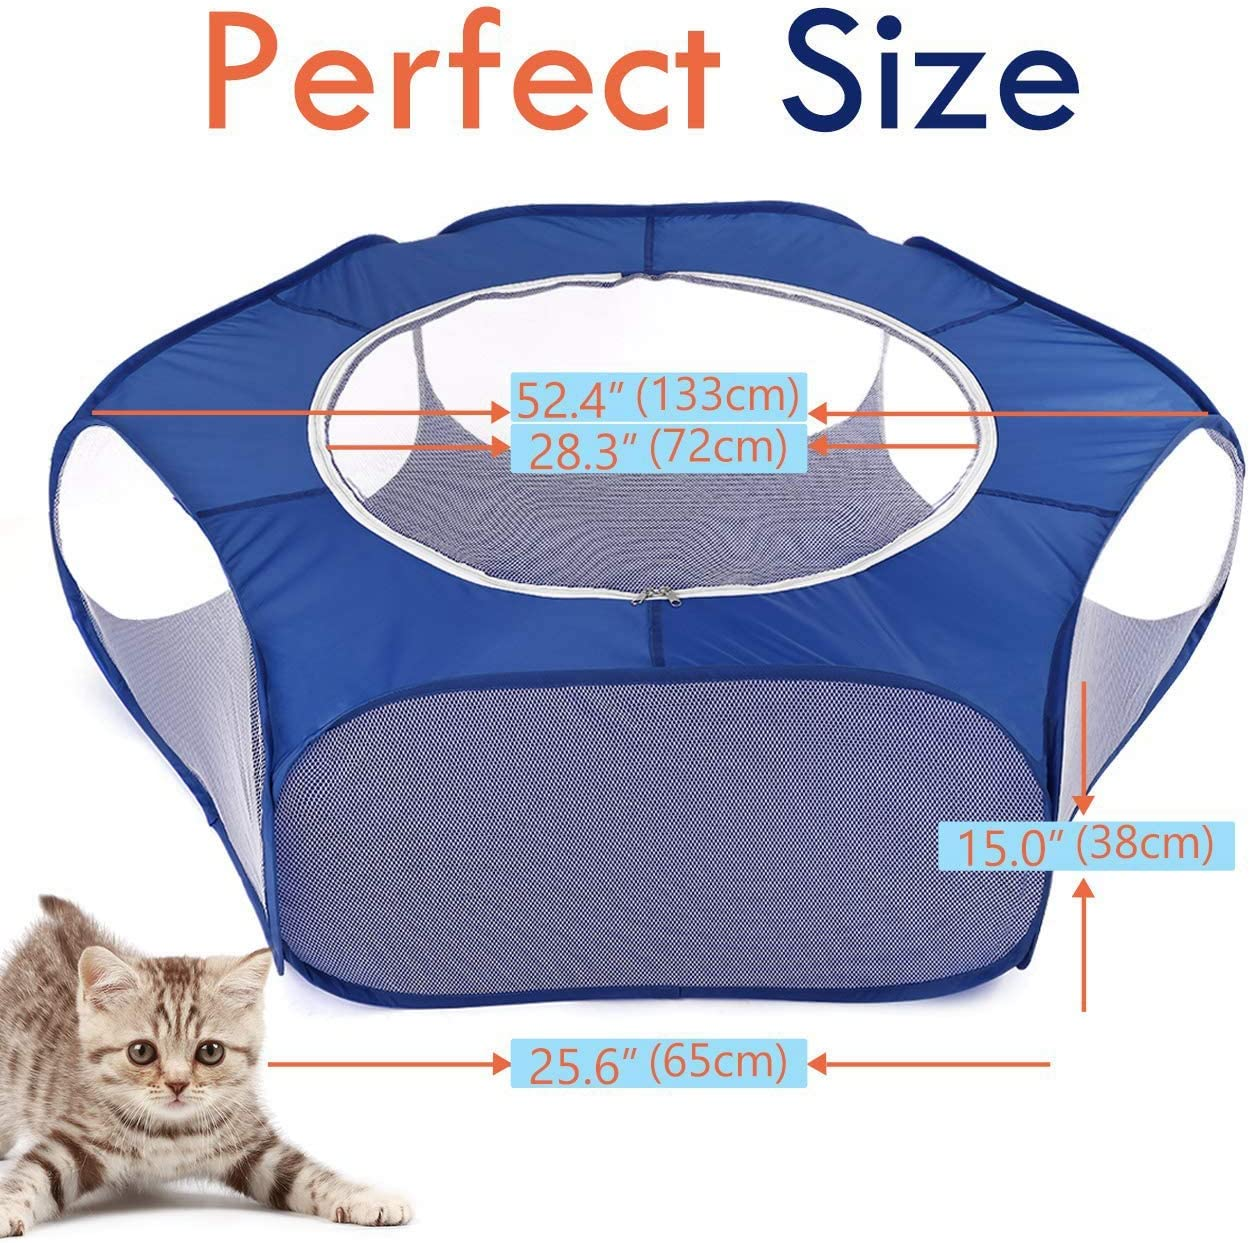 Vaorwne Small Animals Playpen Breathable /& Waterproof Small Pet Cage Tent with Zippered Cover Portable Outdoor Yard Fence